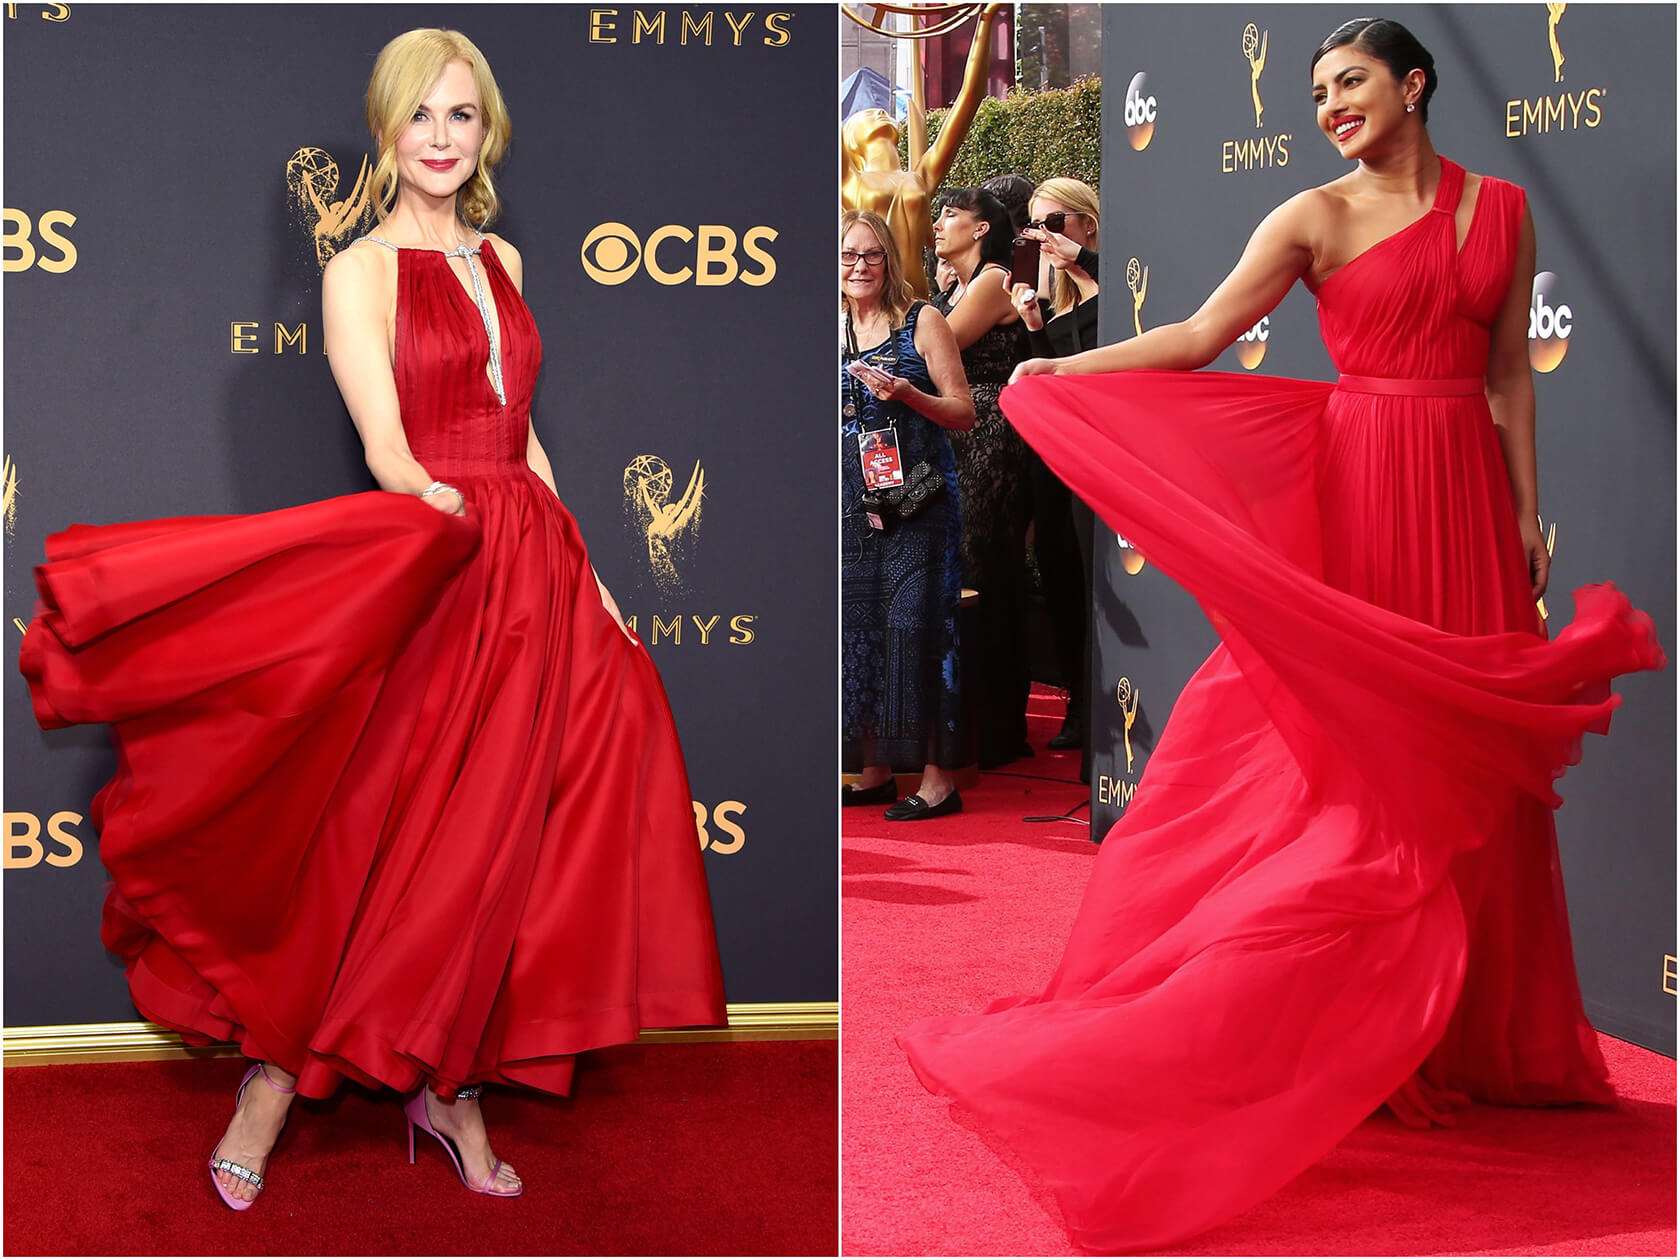 Sydne Style rounds up the best Emmys red dresses of all time with Nicole Kidman and Priyanka Chopra